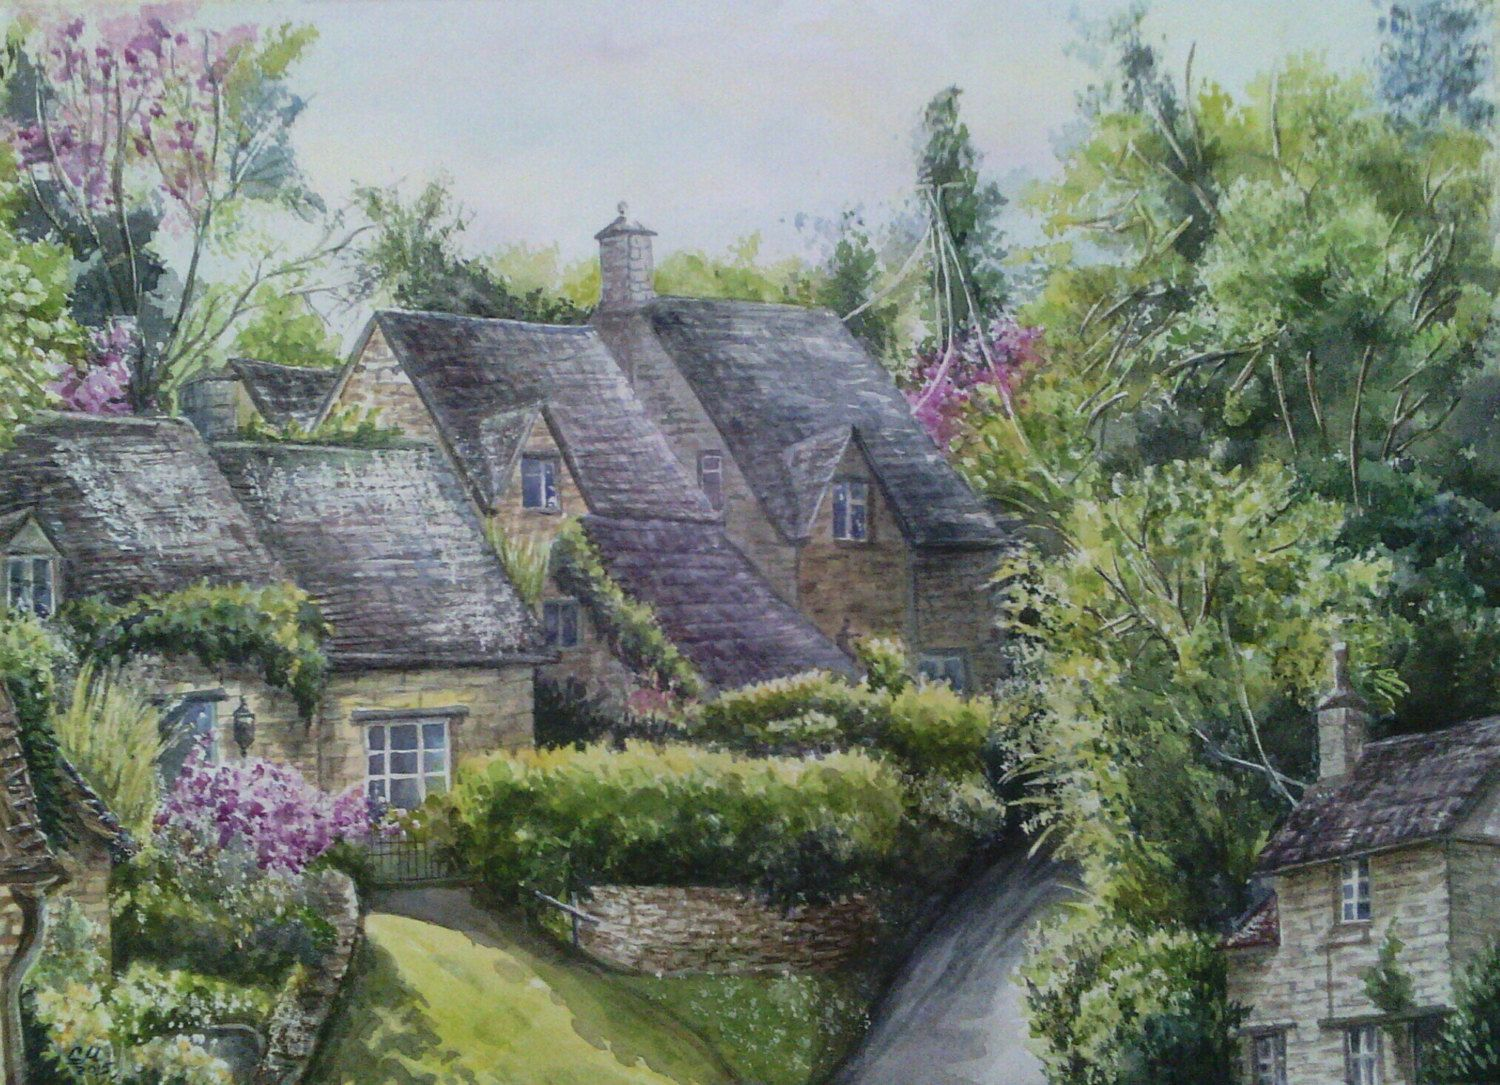 ORIGINAL Painting View Watercolor English Landscape Bibury Country Architecture Gifting Ideas Summer Sun